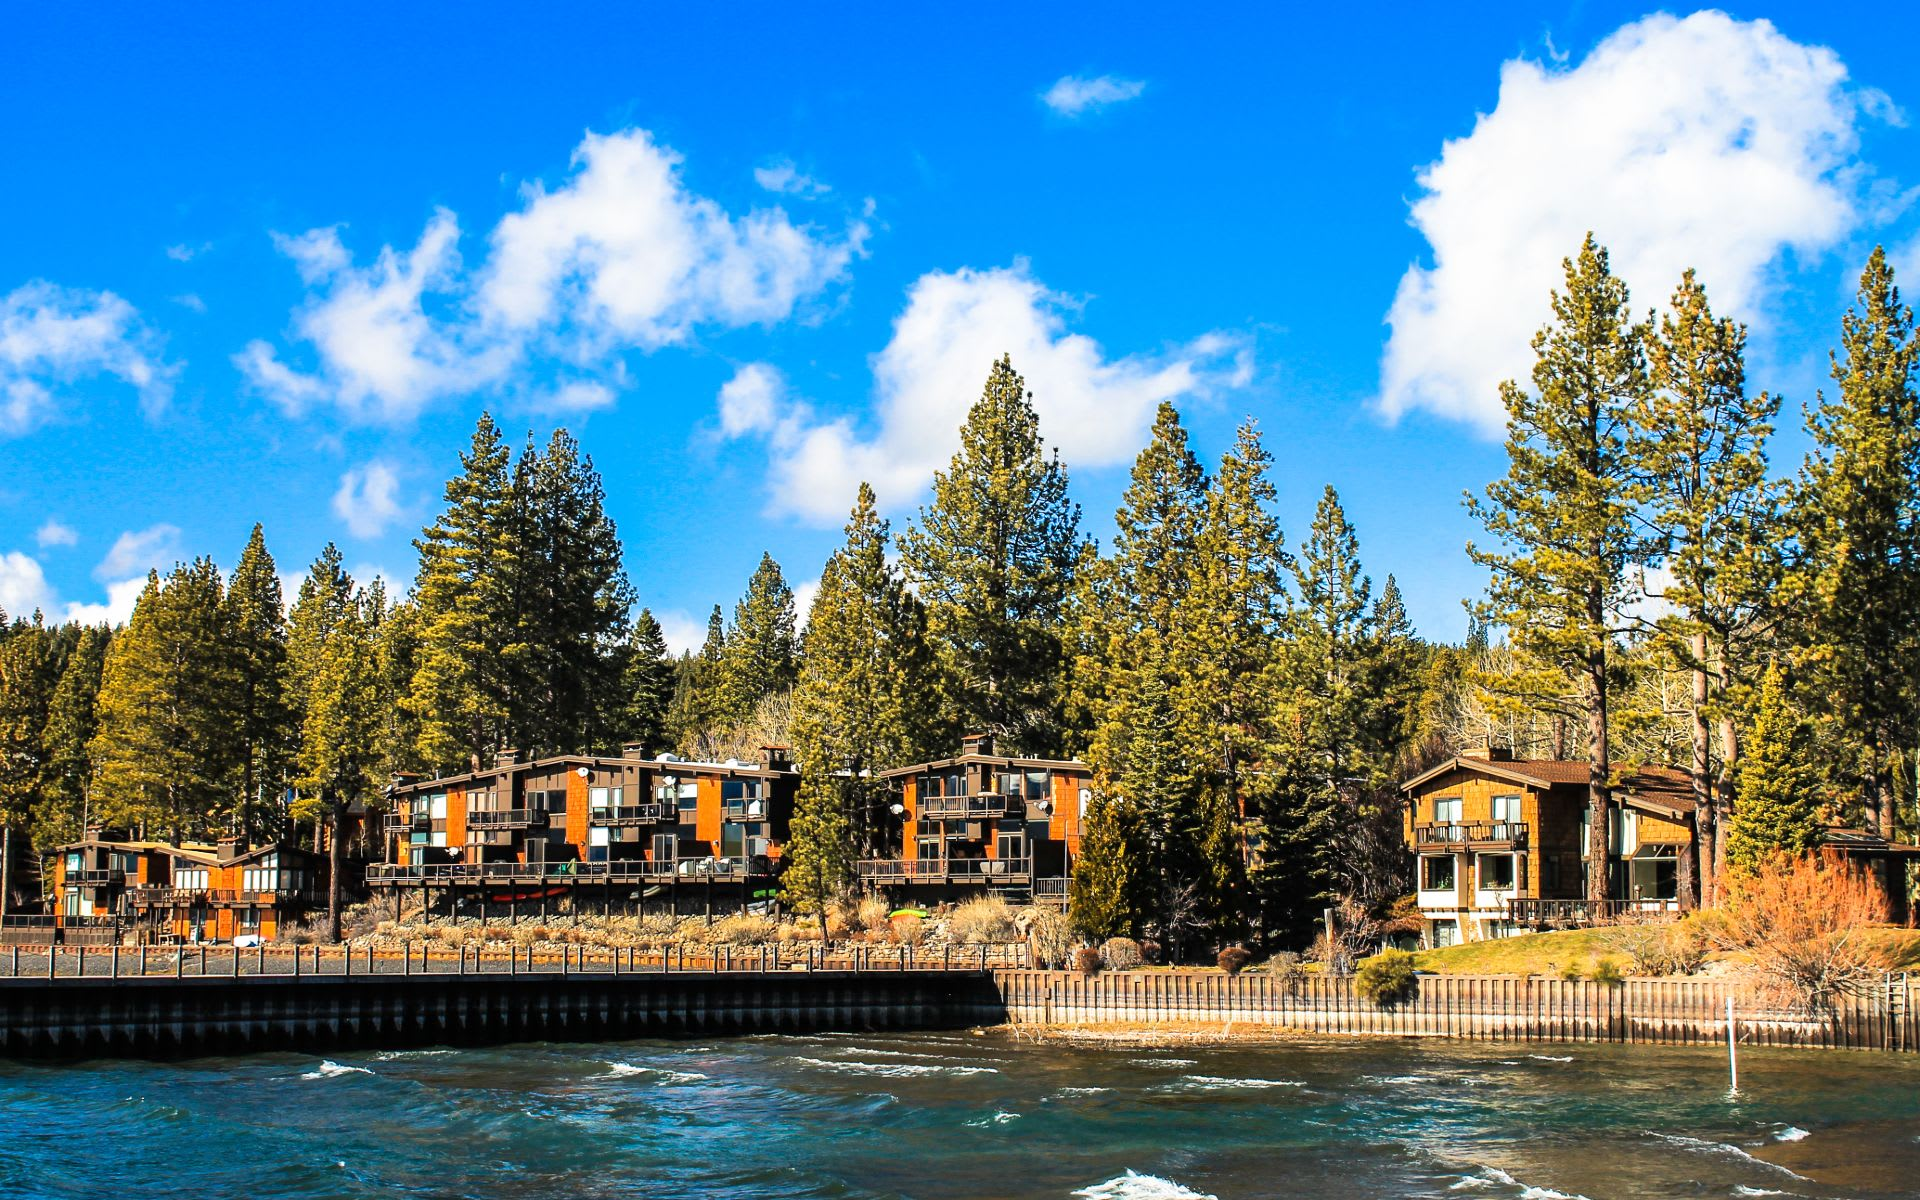 Find Refuge And Comfort At This 94-Acre Estate In The Sierra Nevada Mountain Range